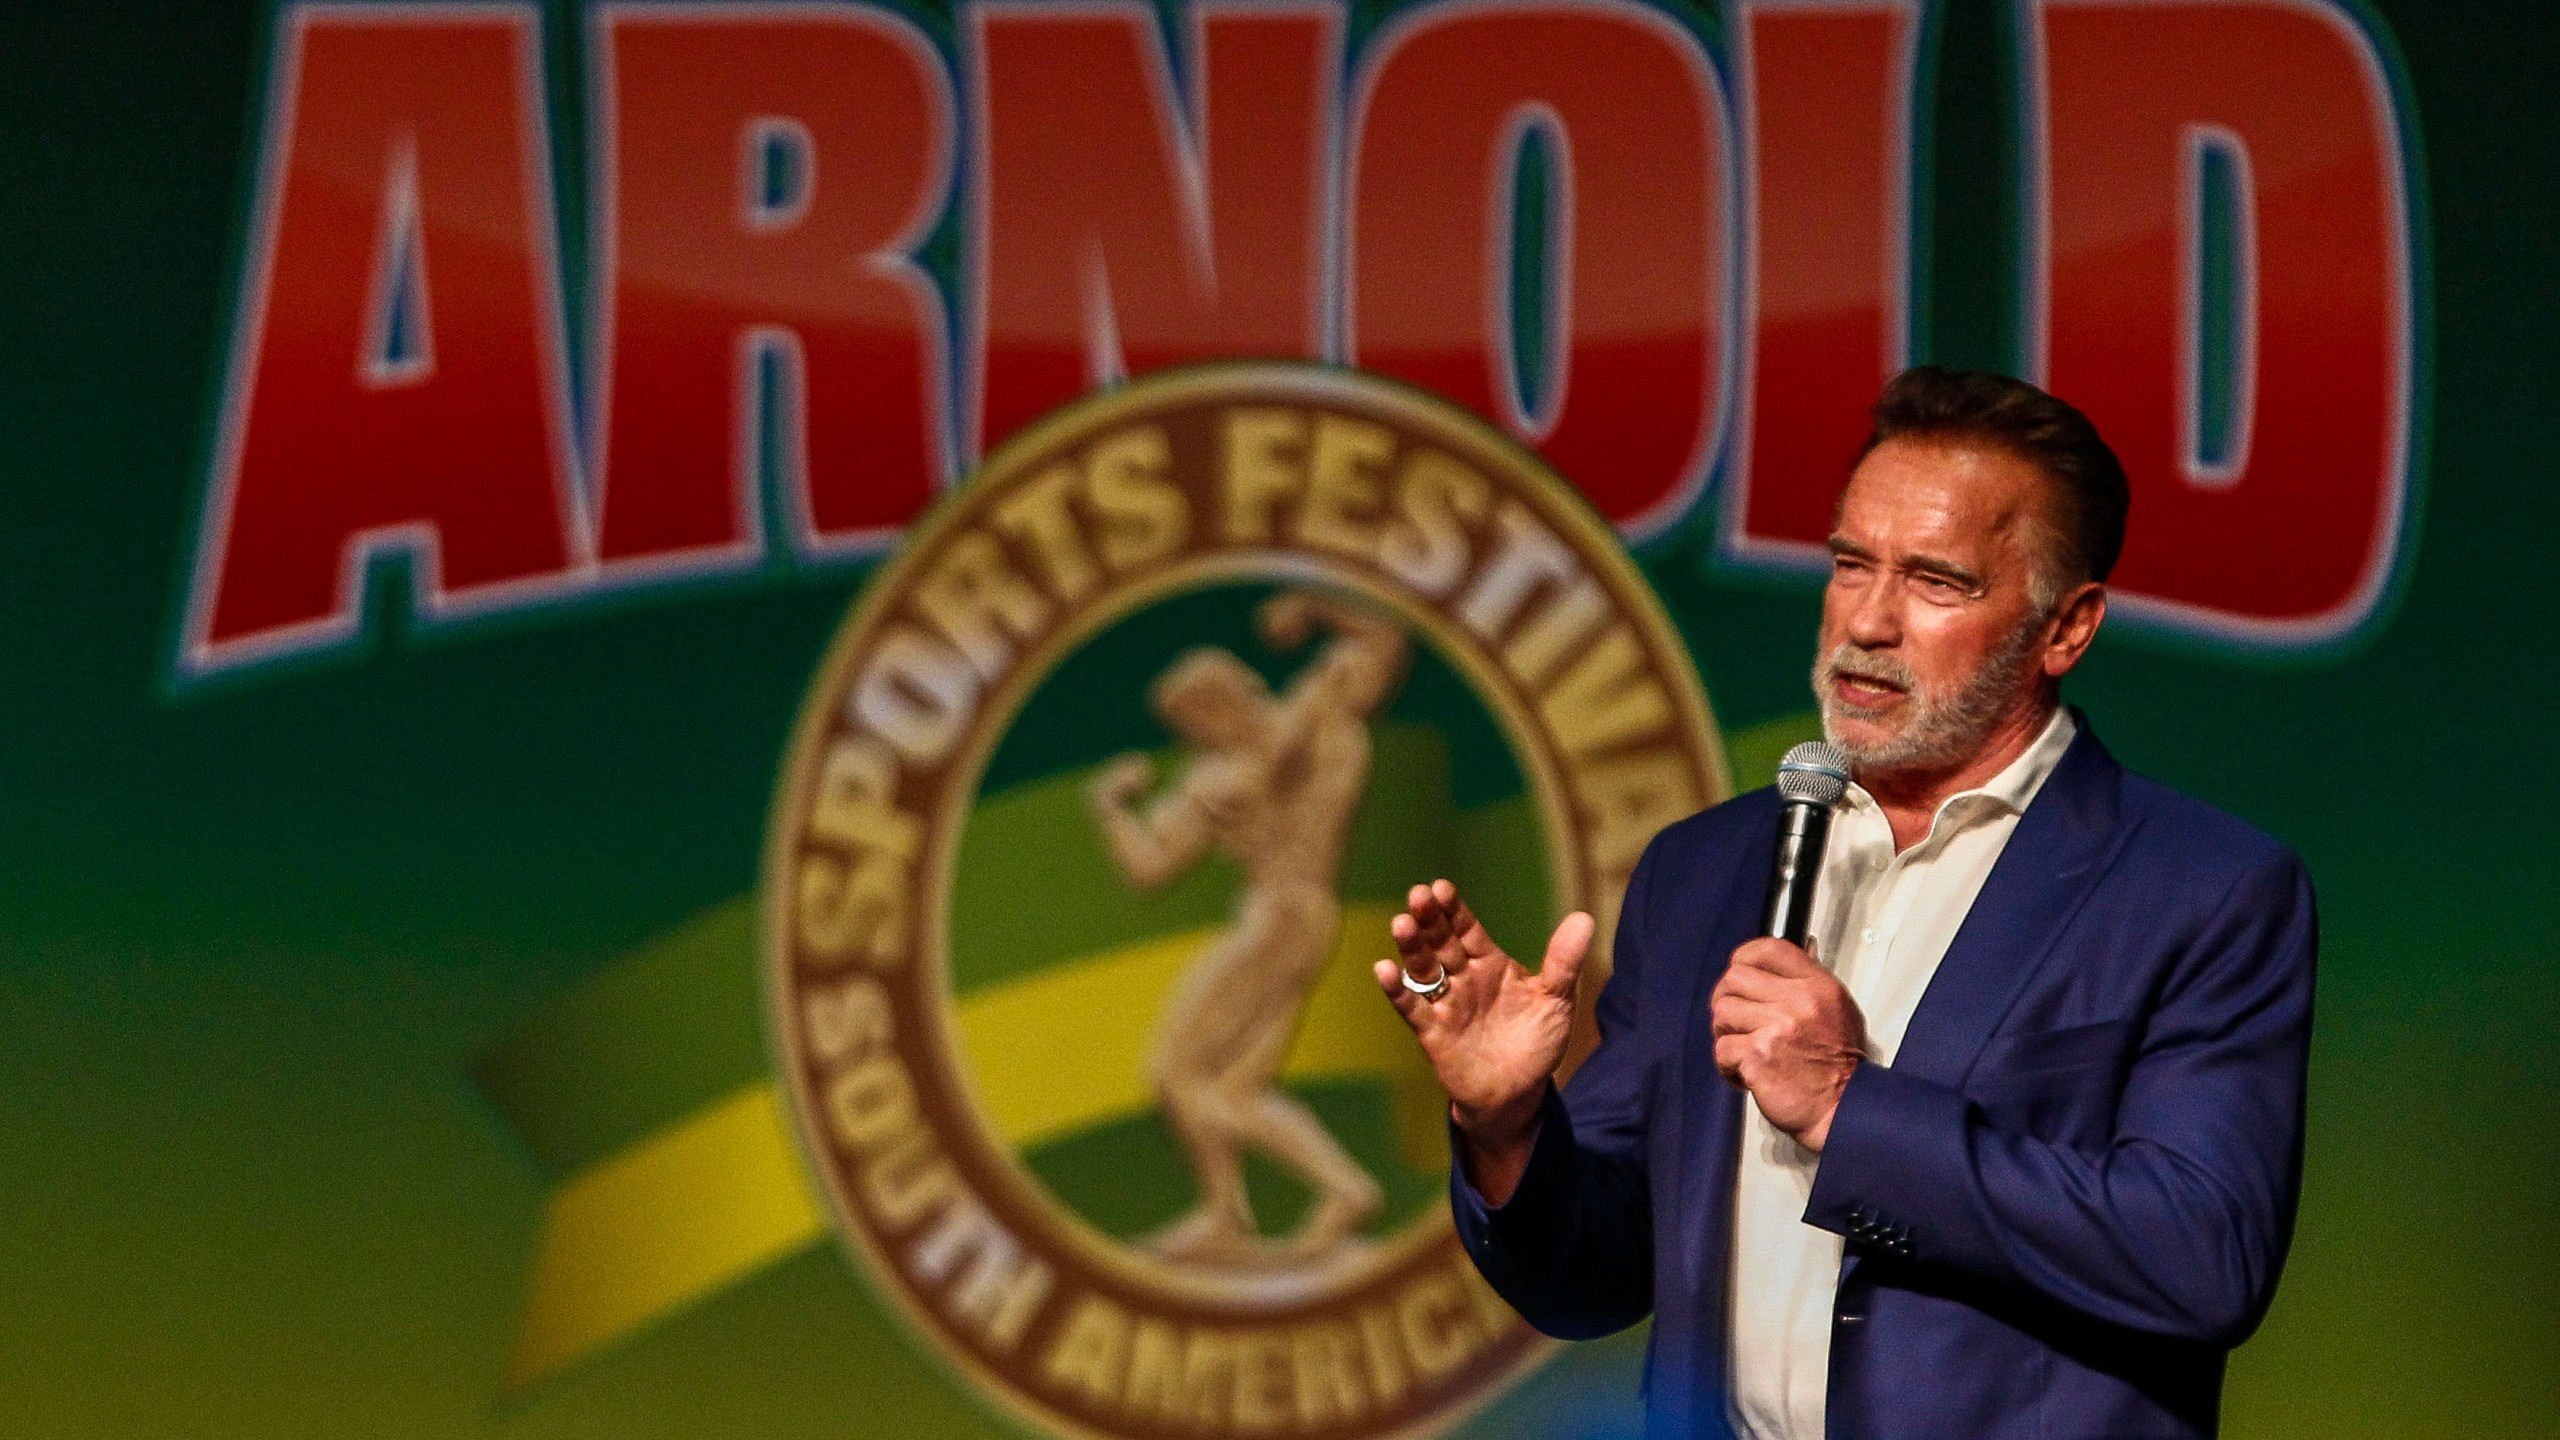 Former California Gov. Arnold Schwarzenegger speaks during the opening of the fitness and bodybuilding Arnold Classic Brazil event in Sao Paulo, Brazil, on April 12, 2019. (Credit: MIGUEL SCHINCARIOL/AFP/Getty Images)